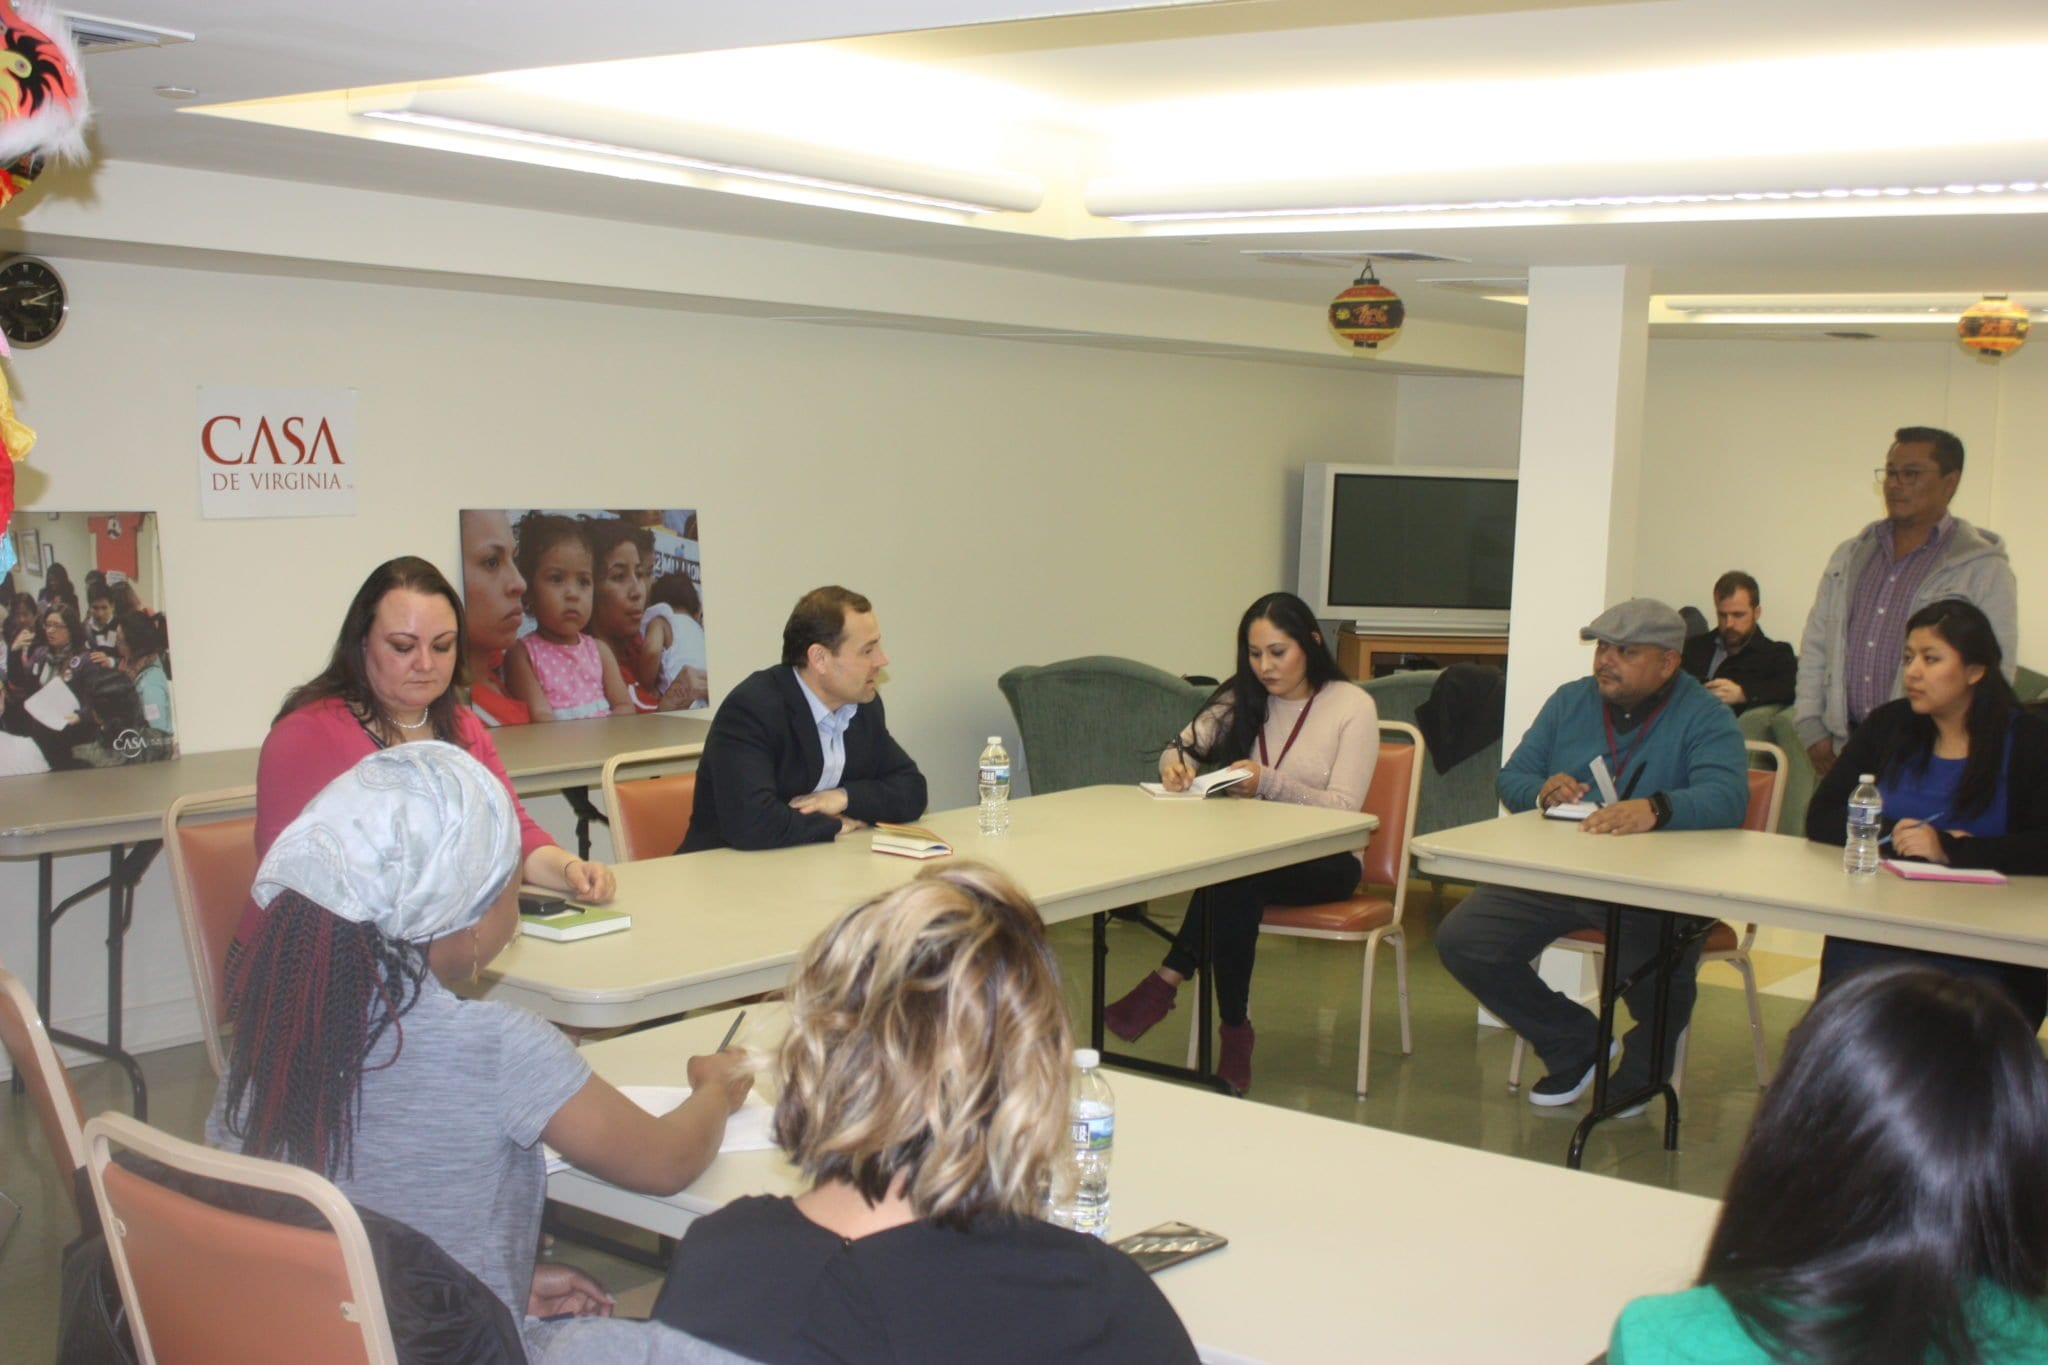 FORMER U.S. REP. Tom Perriello (center, in black) exchanged ideas and stories with a group of DREAMers assembled under the auspices of CASA Virginia in Falls Church on Friday (Photo: News-Press)